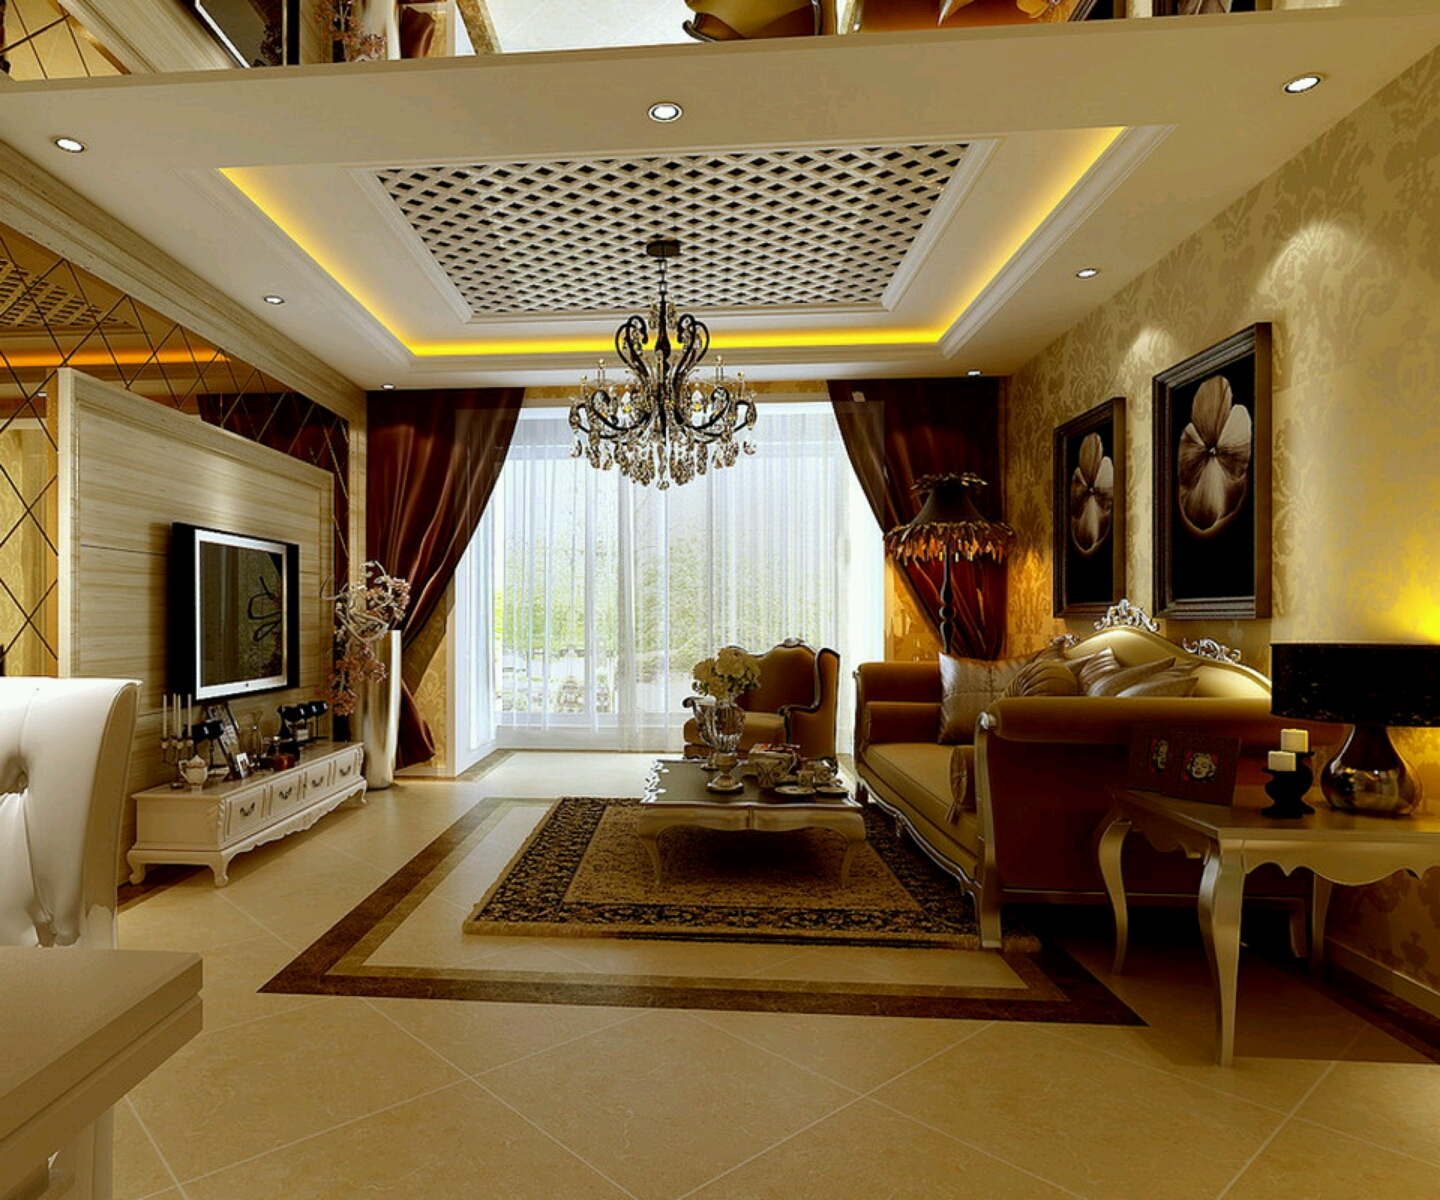 New home designs latest luxury homes interior decoration Pictures of new homes interior